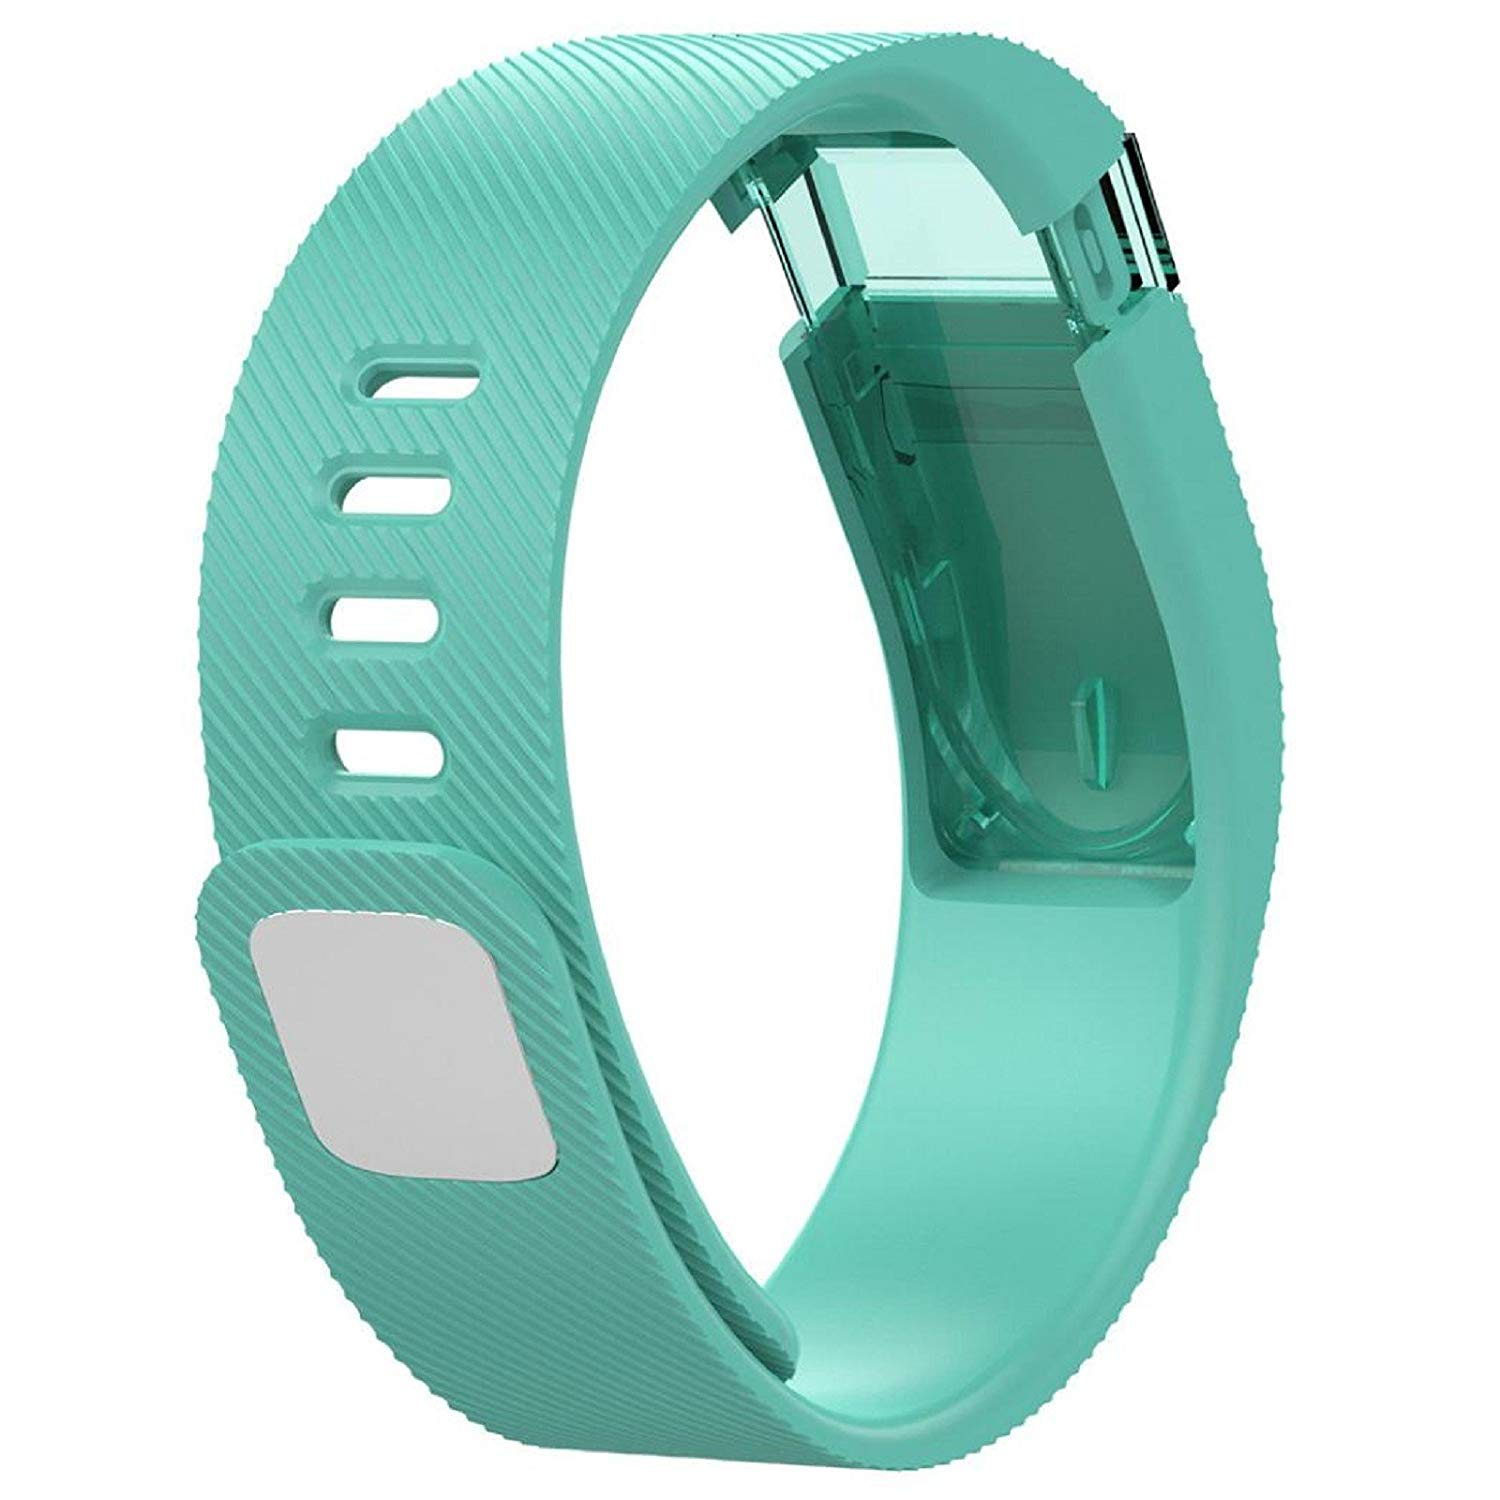 Owill Large Size 160-225MM Replacement Silicone Band Rubber Strap Wristband Watch Band For Fitbit Force (Green)